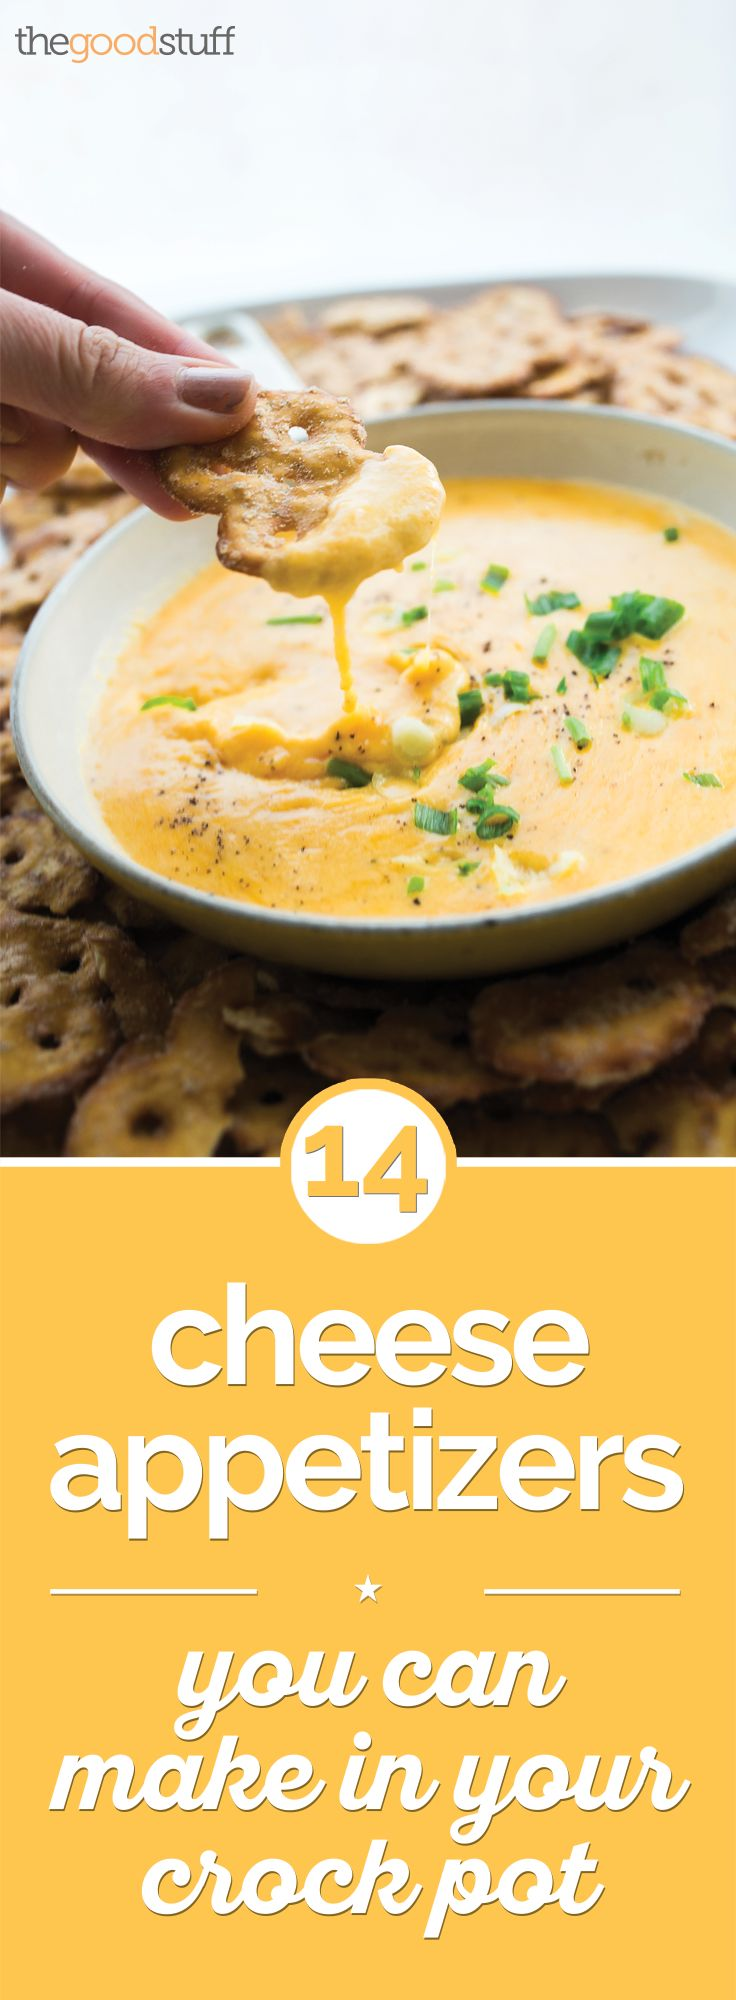 14 Cheese Appetizers You Can Make in Your Crock Pot | thegoodstuff